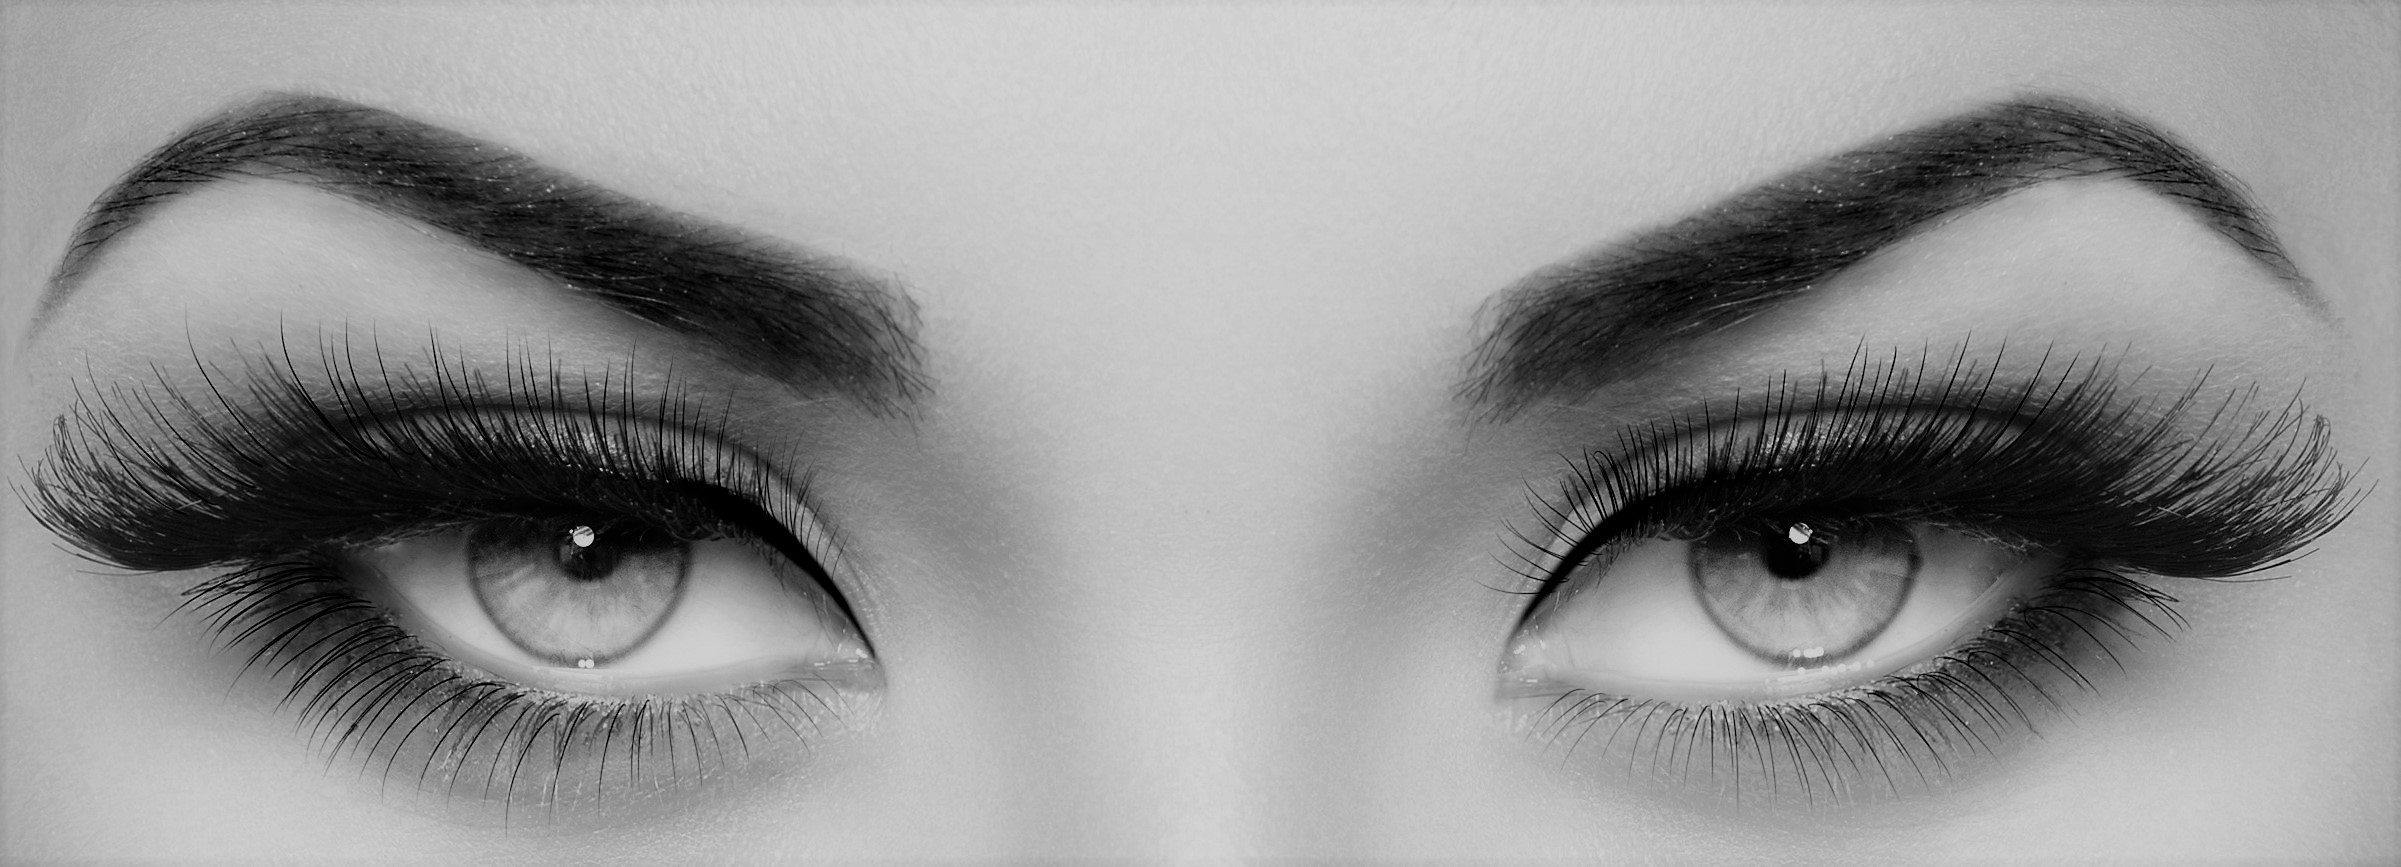 Achieve a Stunning Look with Professional Eyelash Extensions Services